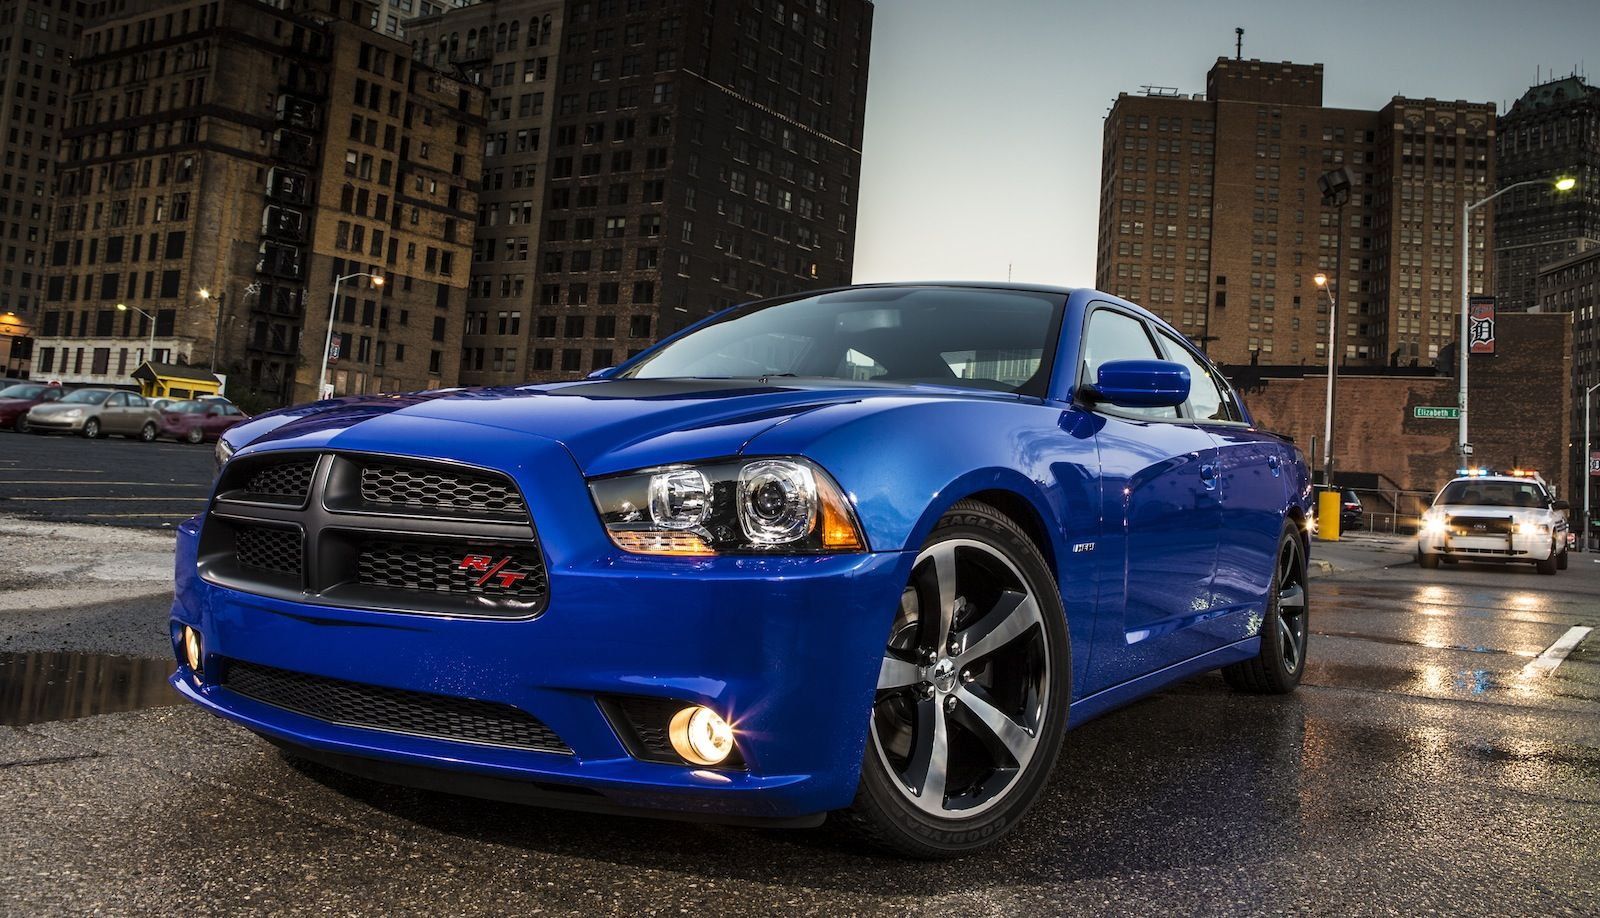 dodge charger a chance for australia in 2014 dodge charger a chancedodge charger a chance for australia in 2014 dodge charger a chance for australia in 2014 dodge charger a chance for australia in